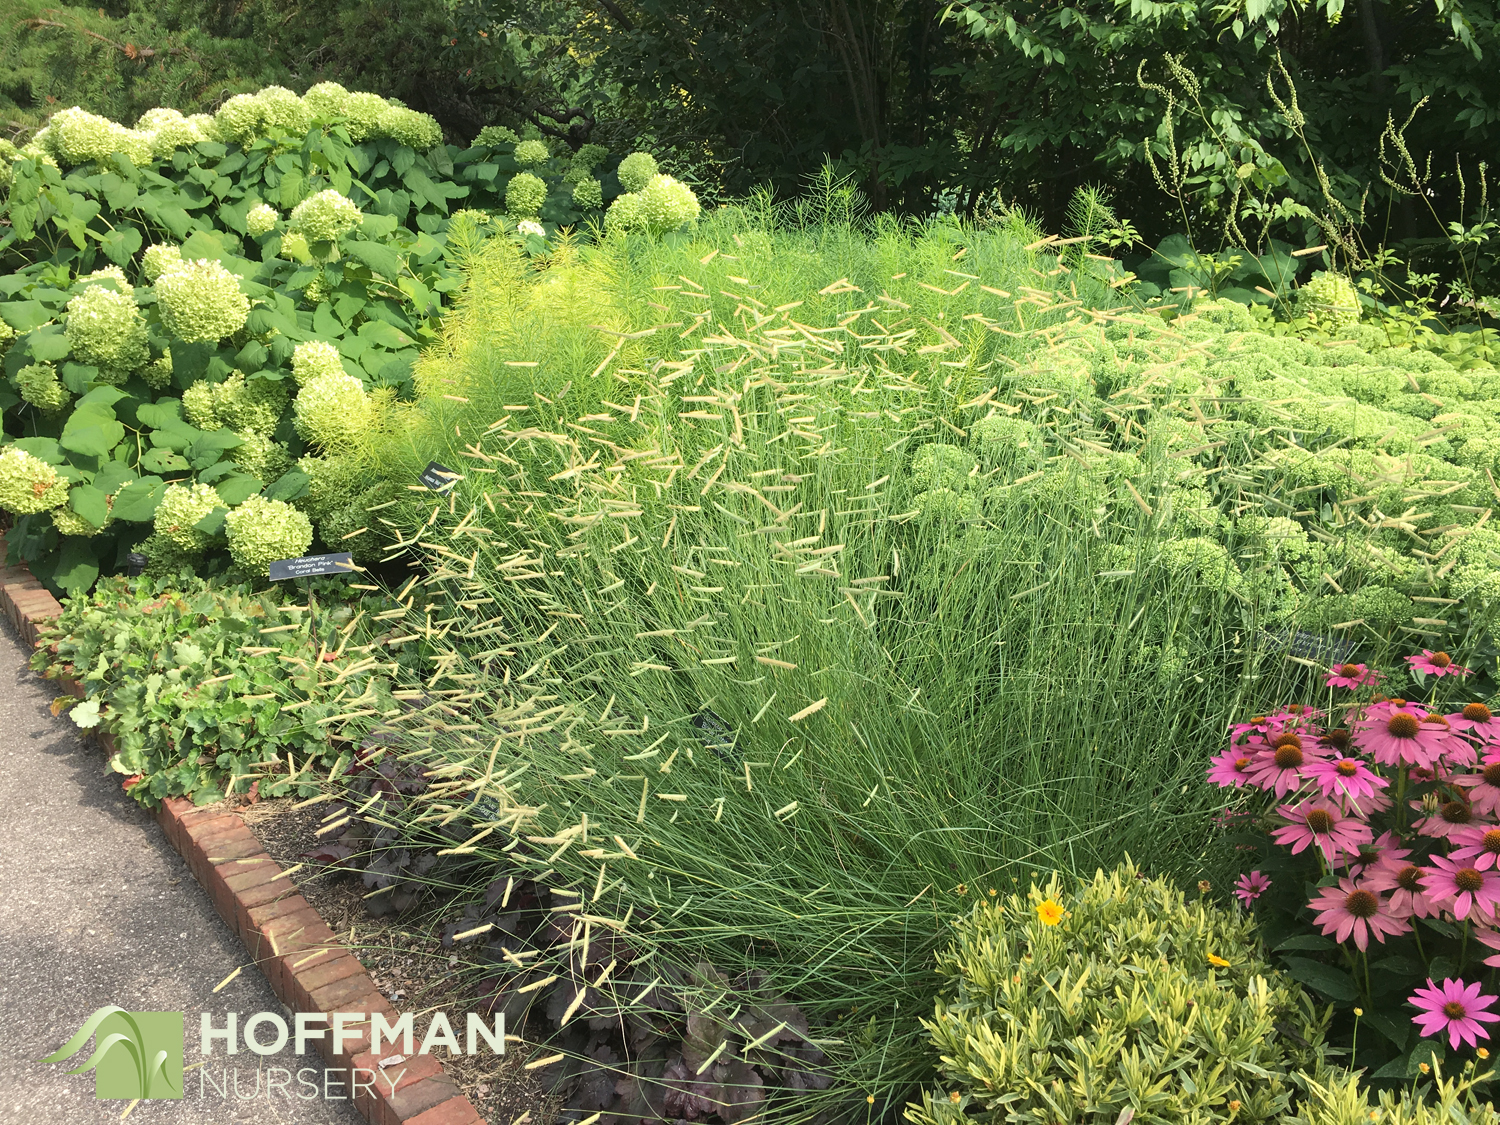 The Perennial Garden at the Arboretum was a treasure trove of plants. We really like they way they used grasses!